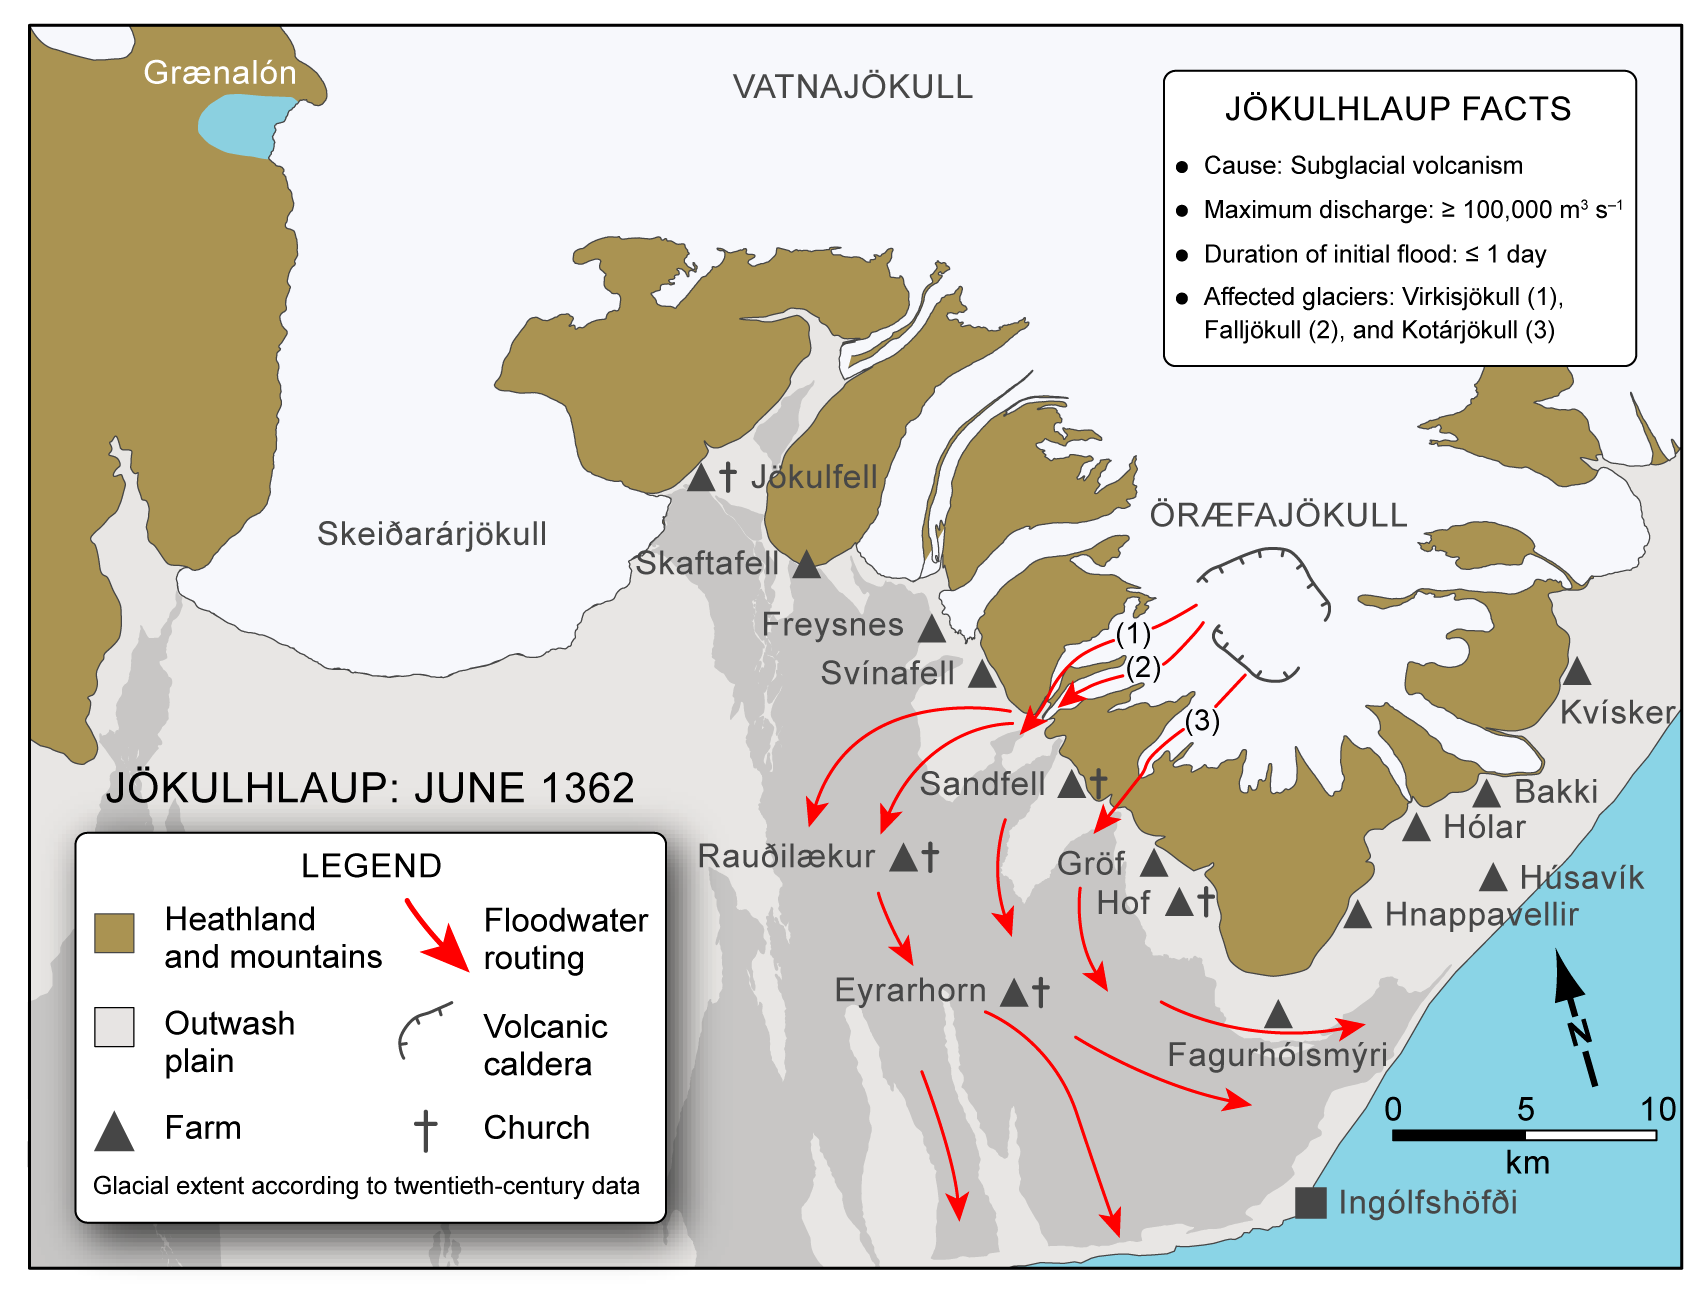 The jökulhlaup pathways following the eruption of Öræfajökull in 1362 according to studies of Sigurður Þórarinsson. Source: Guðmundsson et al. (2016).